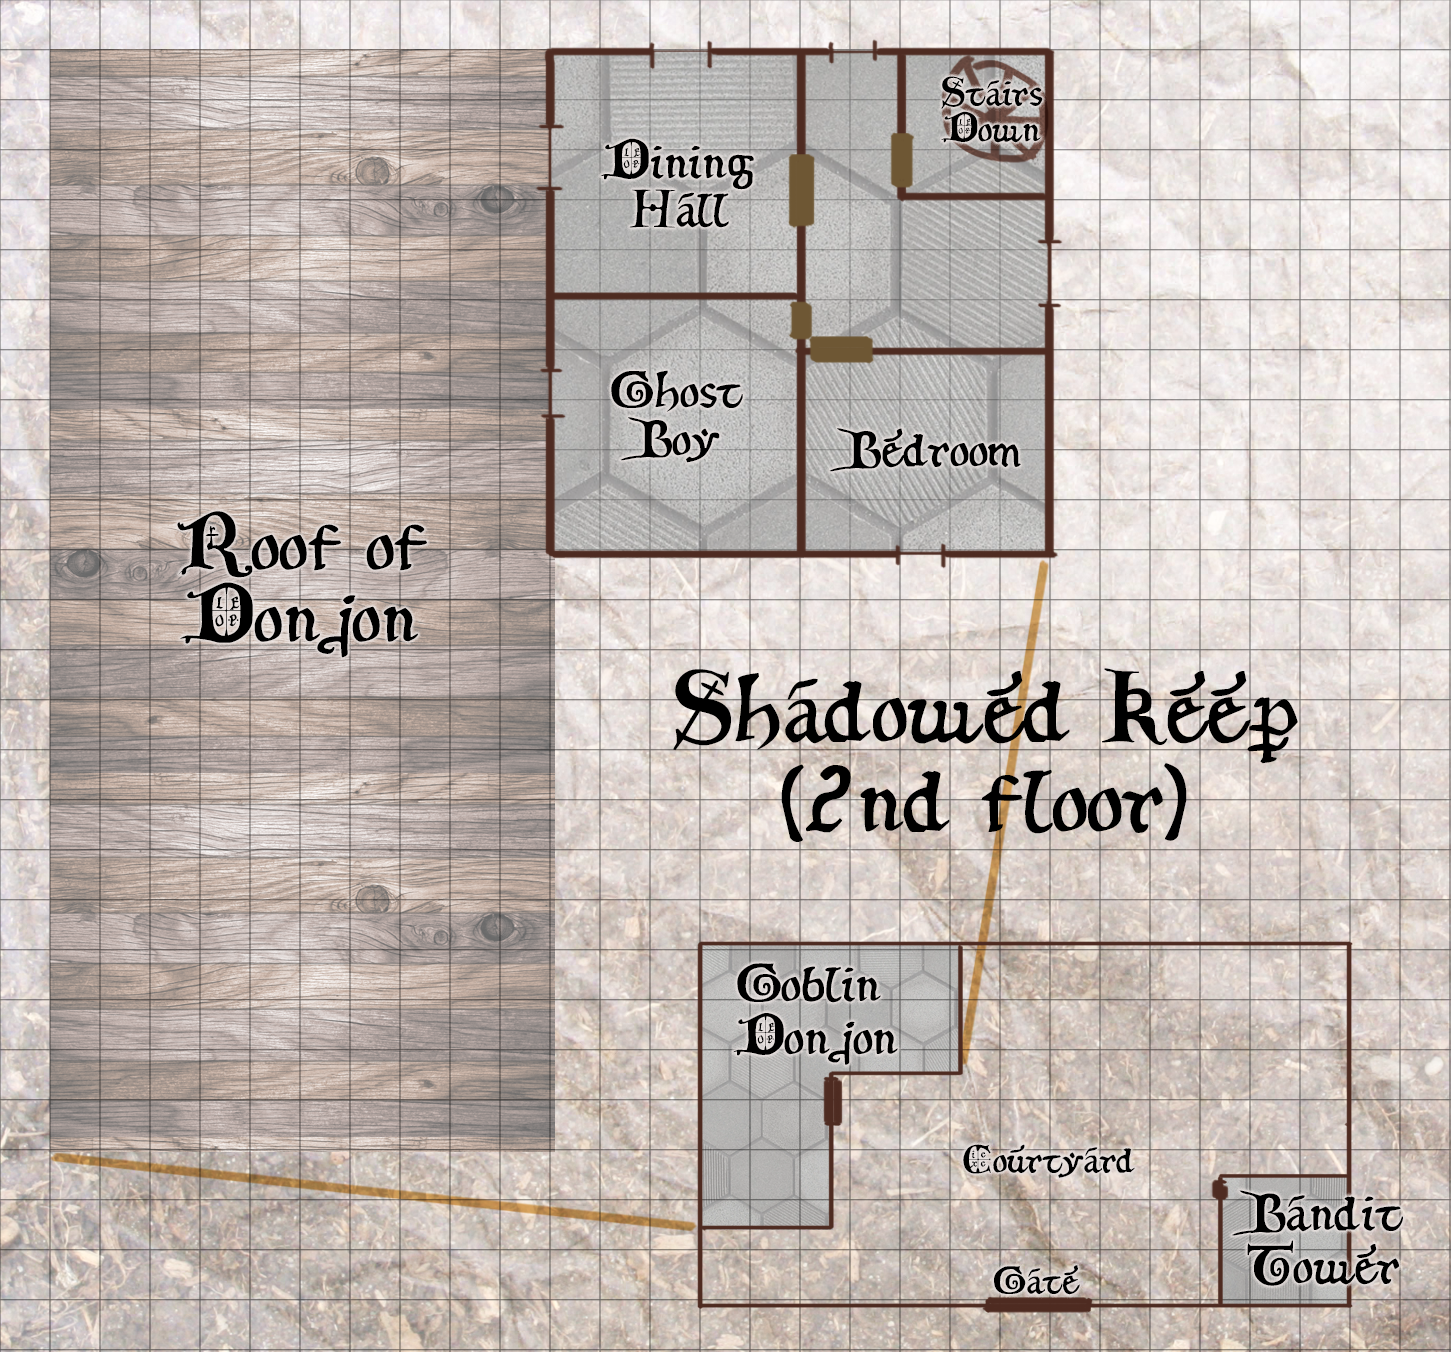 Shadowed Keep - 2nd floor